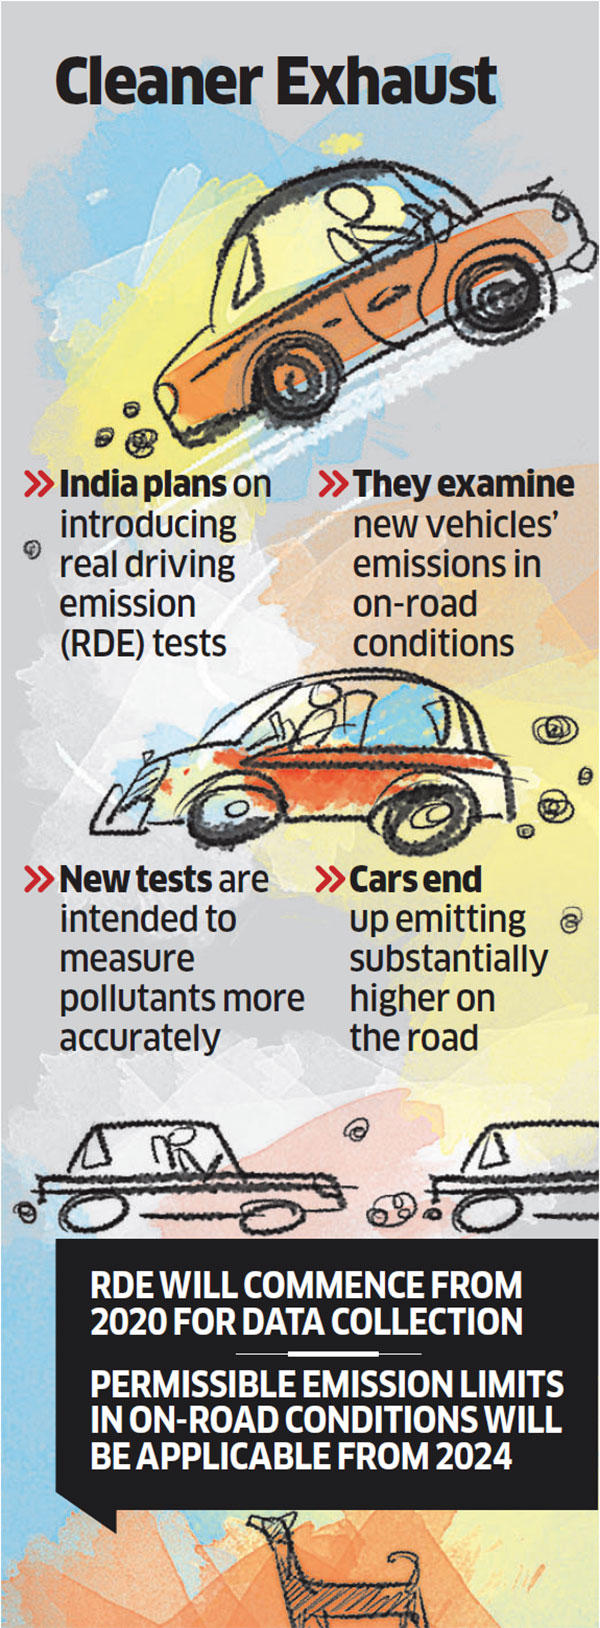 Soon, real driving emission tests to check actual performance on road